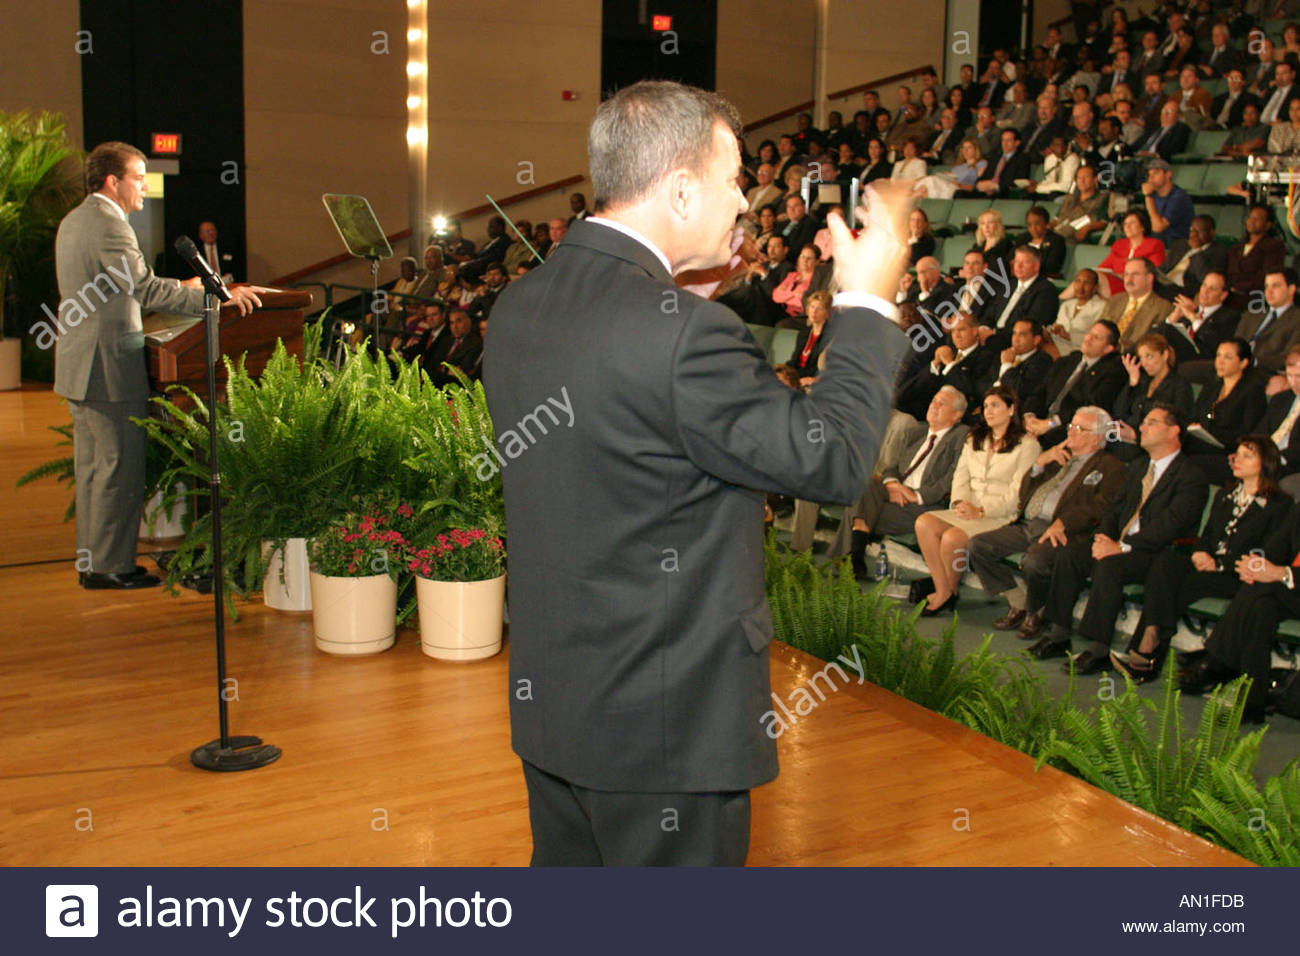 Coral Gables Miami Florida University of Miami Gusman Hall annual State of the County Address man translates speech into sign language - Stock Image